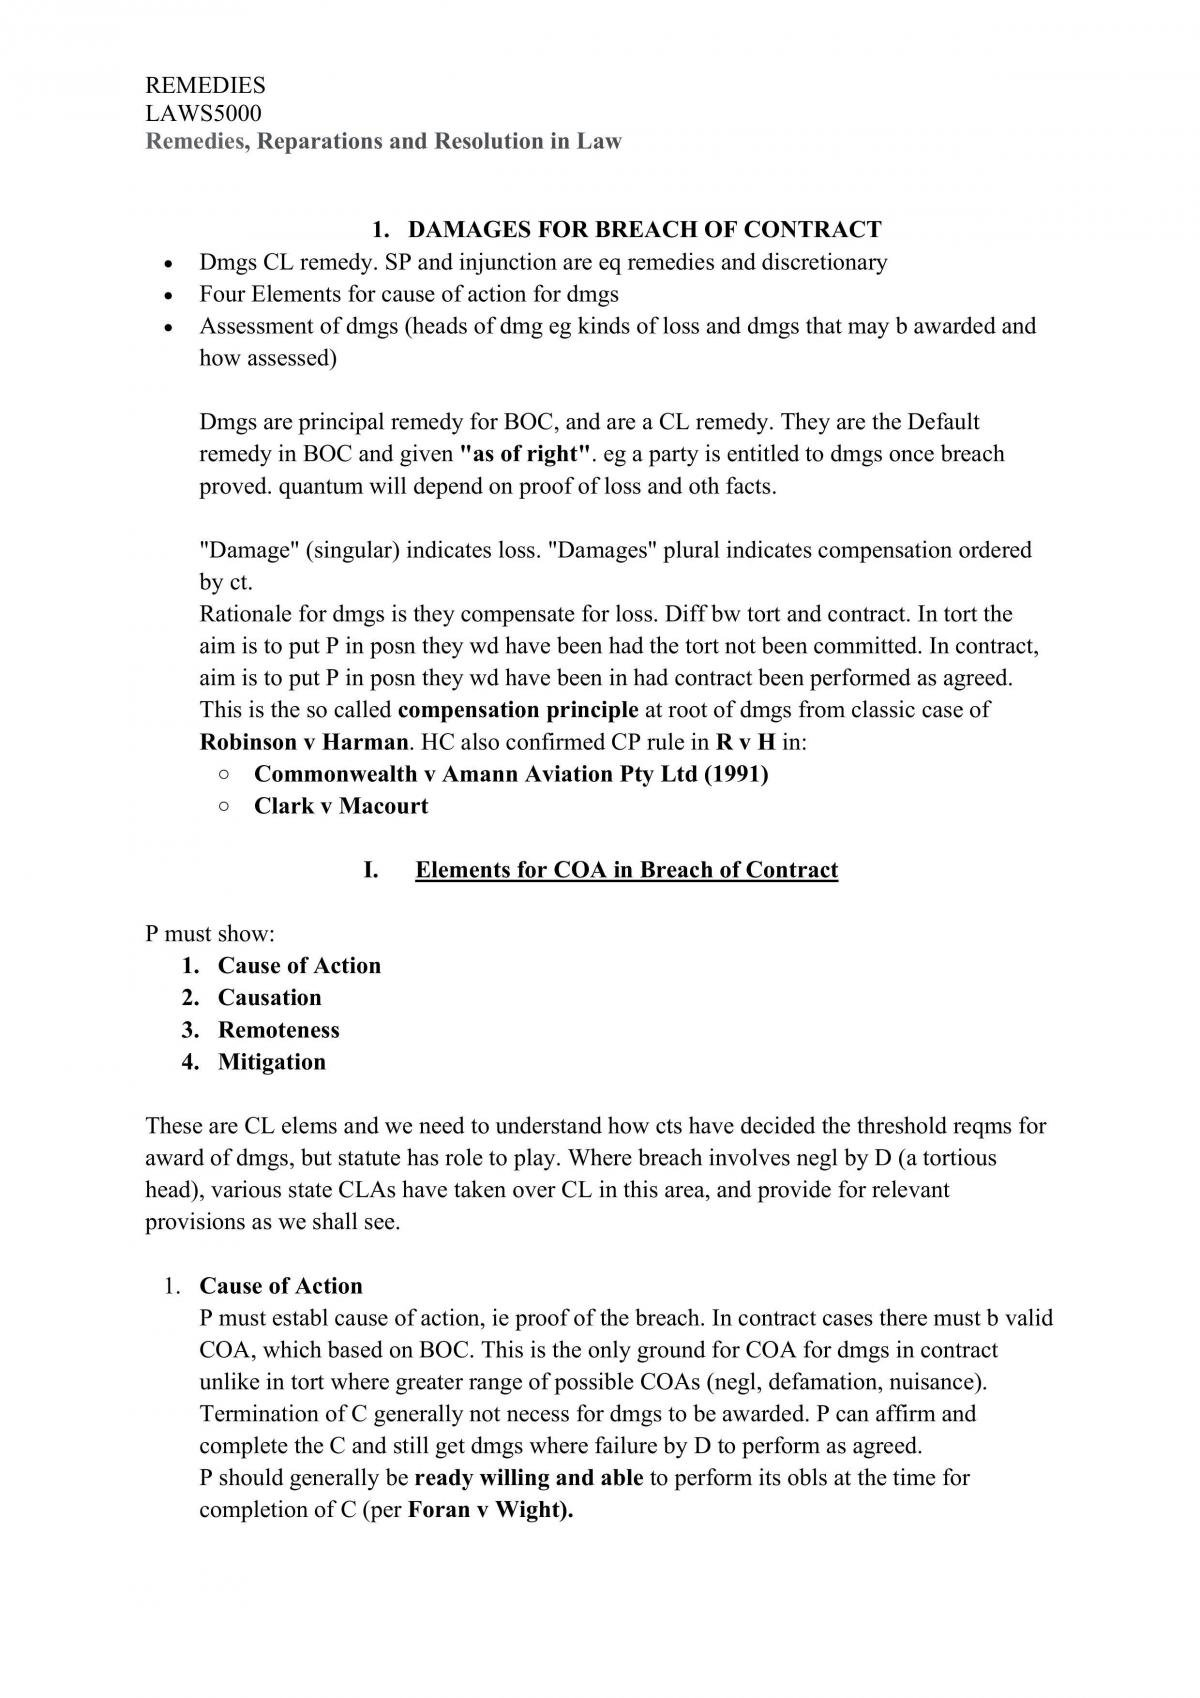 Remedies in Law Revisiable Notes  - Page 3